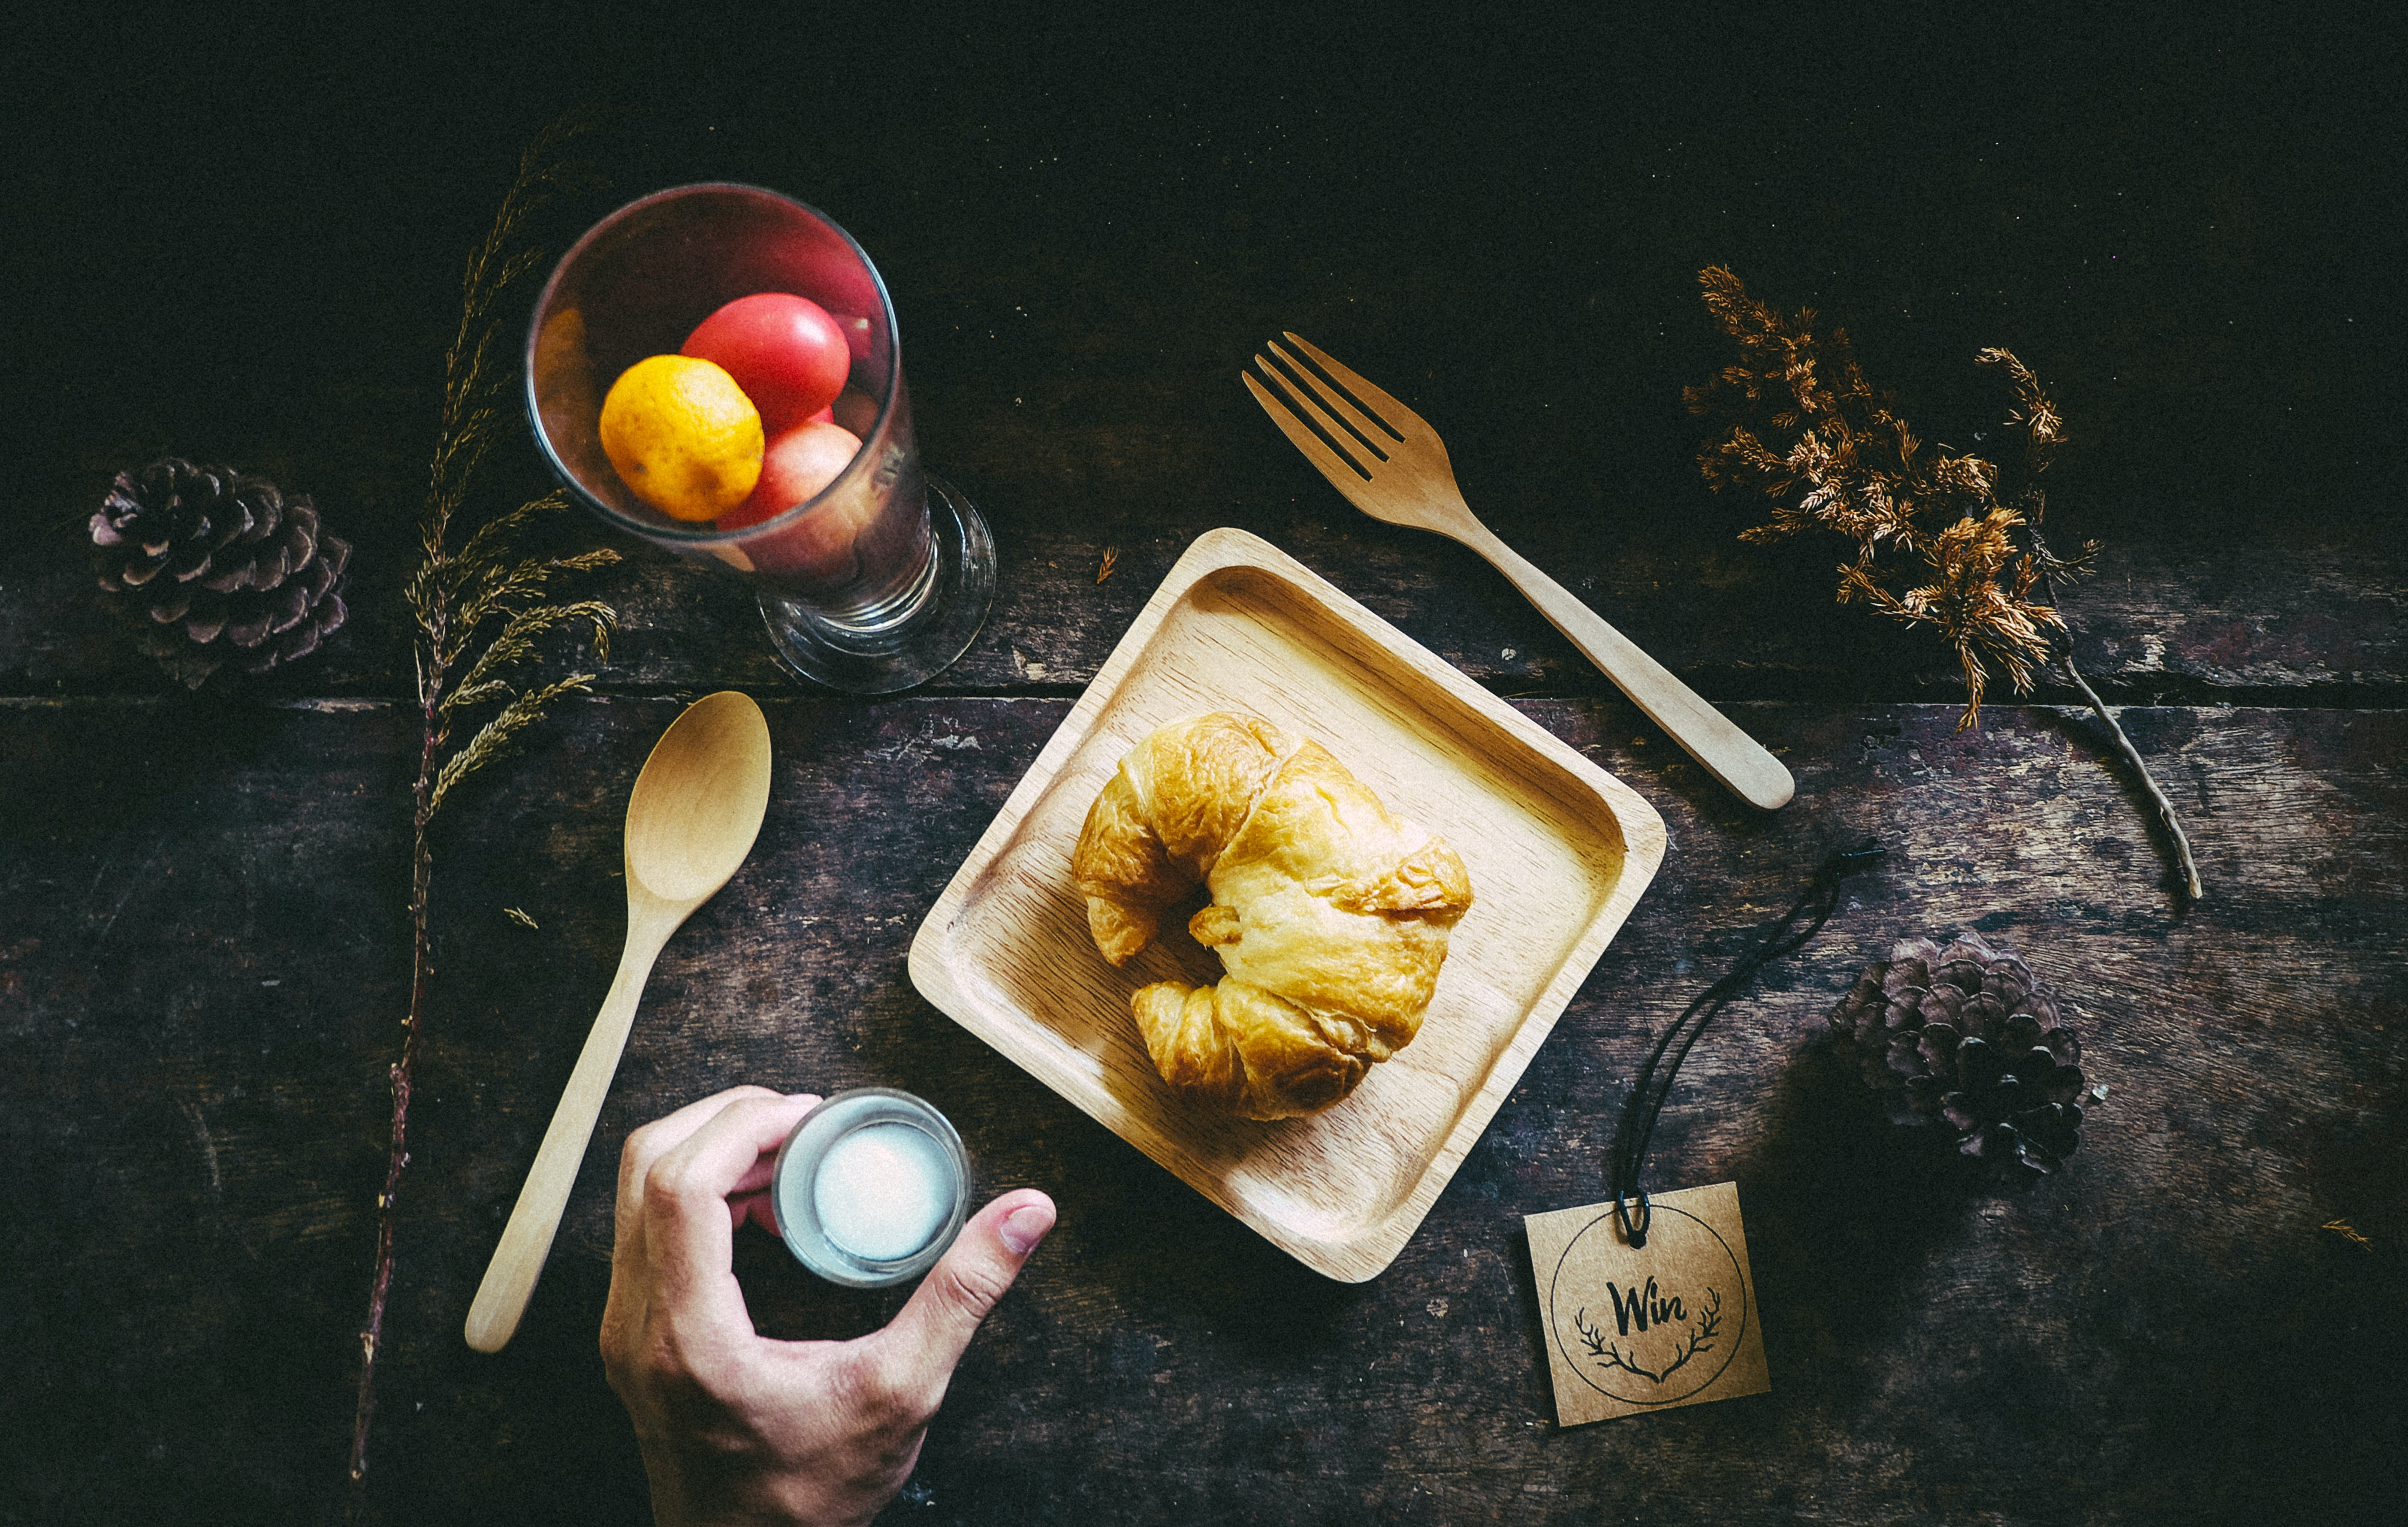 A croissant, fruits, and flatware on a table at Ubon Ratchathani